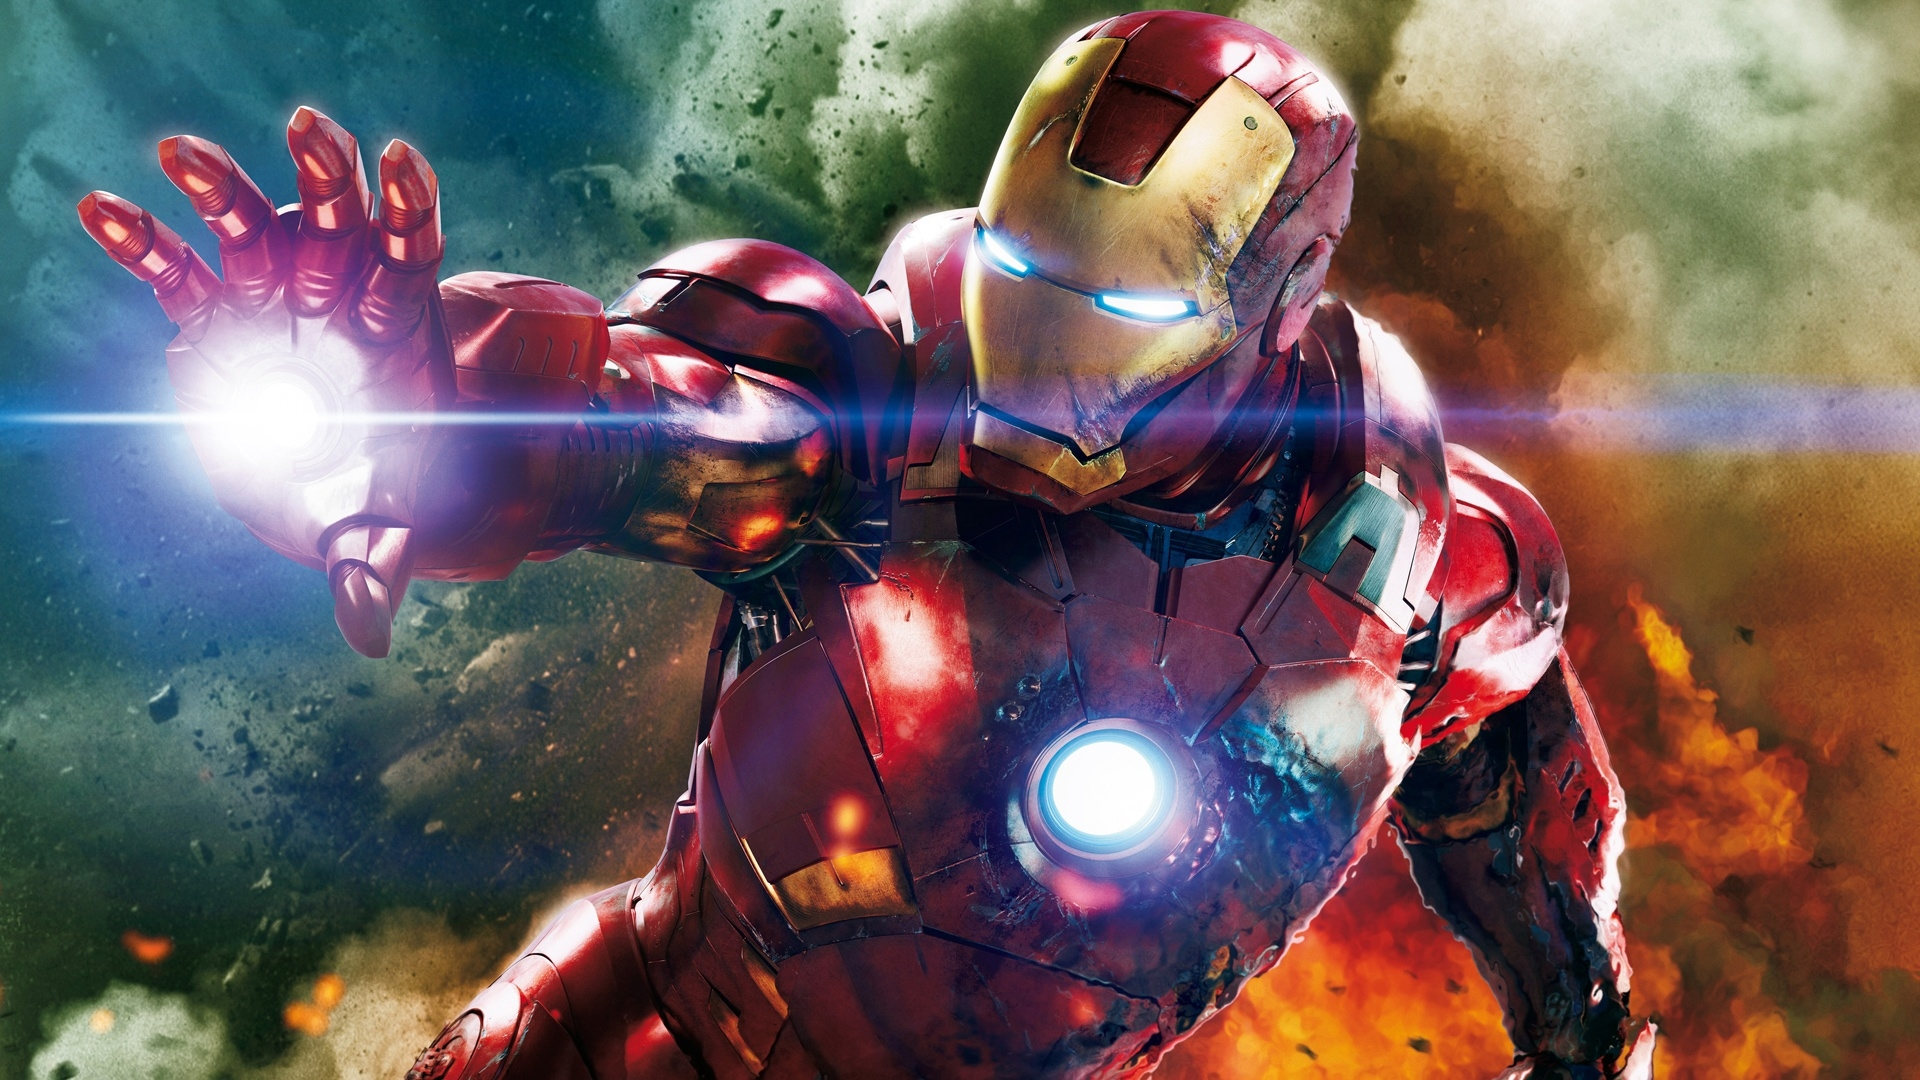 best marvel movie ironman wallpaper hd